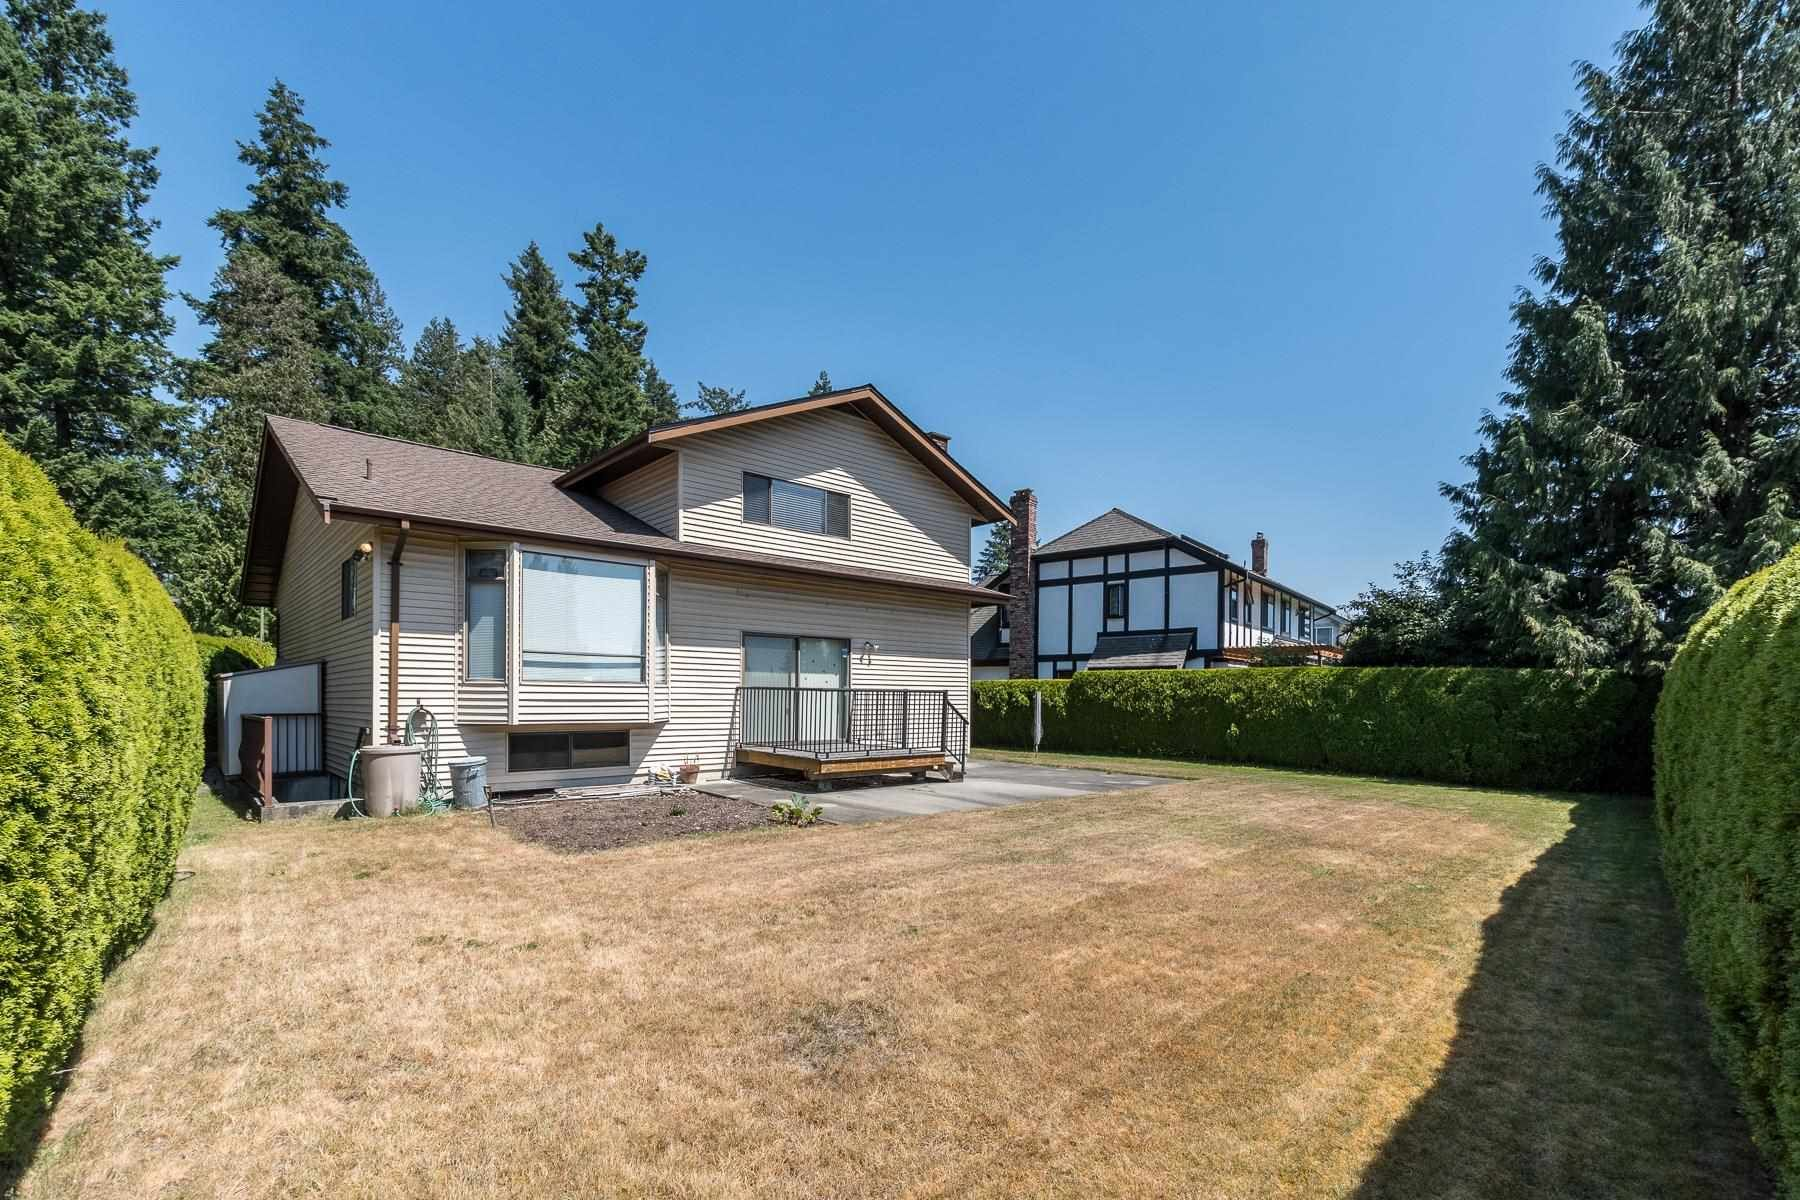 """Photo 39: Photos: 378 BALFOUR Drive in Coquitlam: Coquitlam East House for sale in """"DARTMOOR HEIGHTS"""" : MLS®# R2600428"""